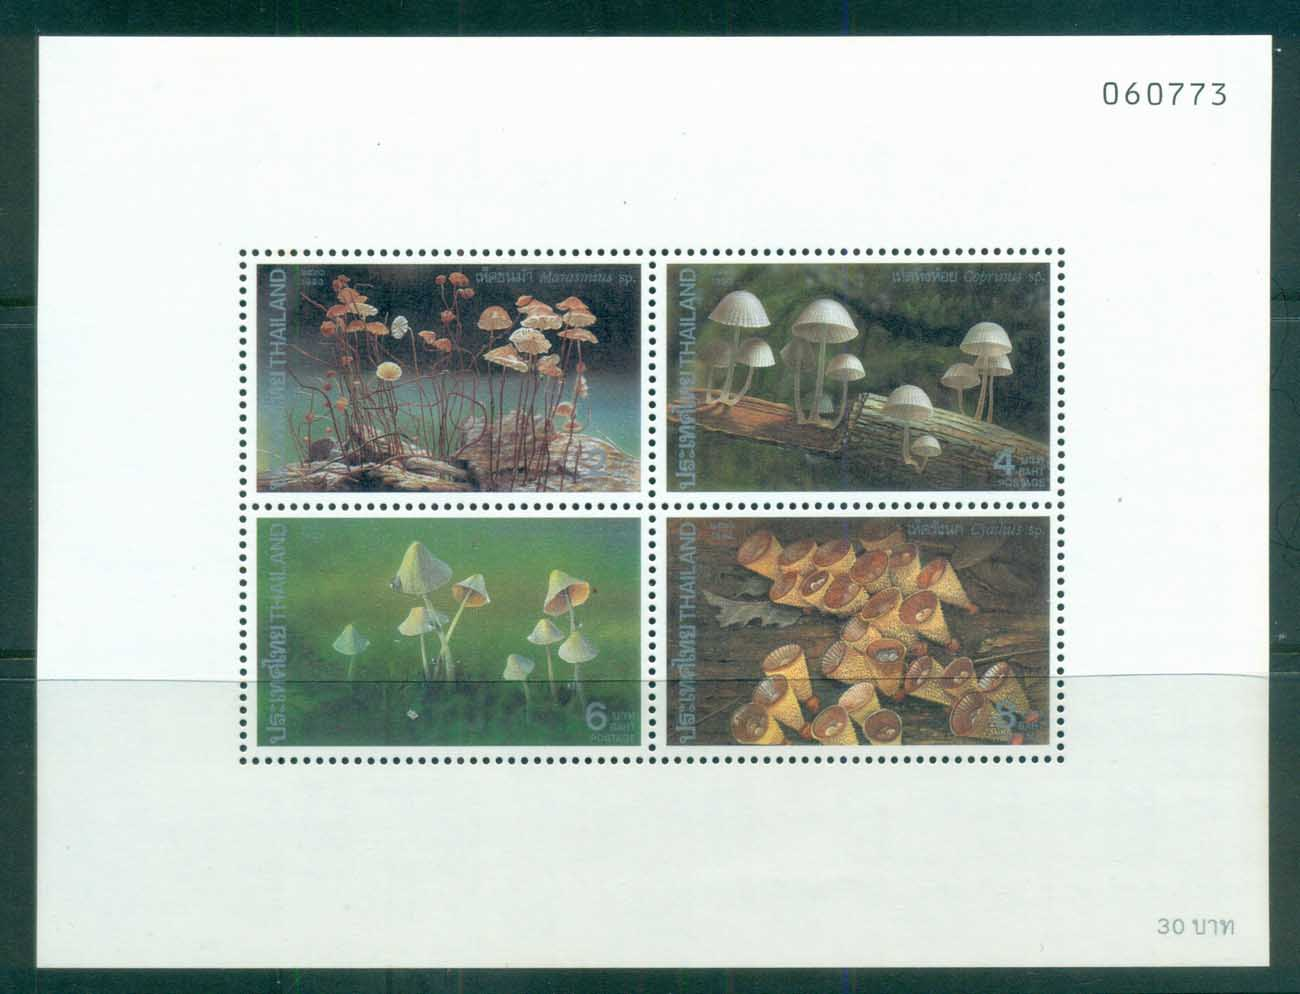 Thailand 1993 Mushrooms, Funghi MS MUH lot82098